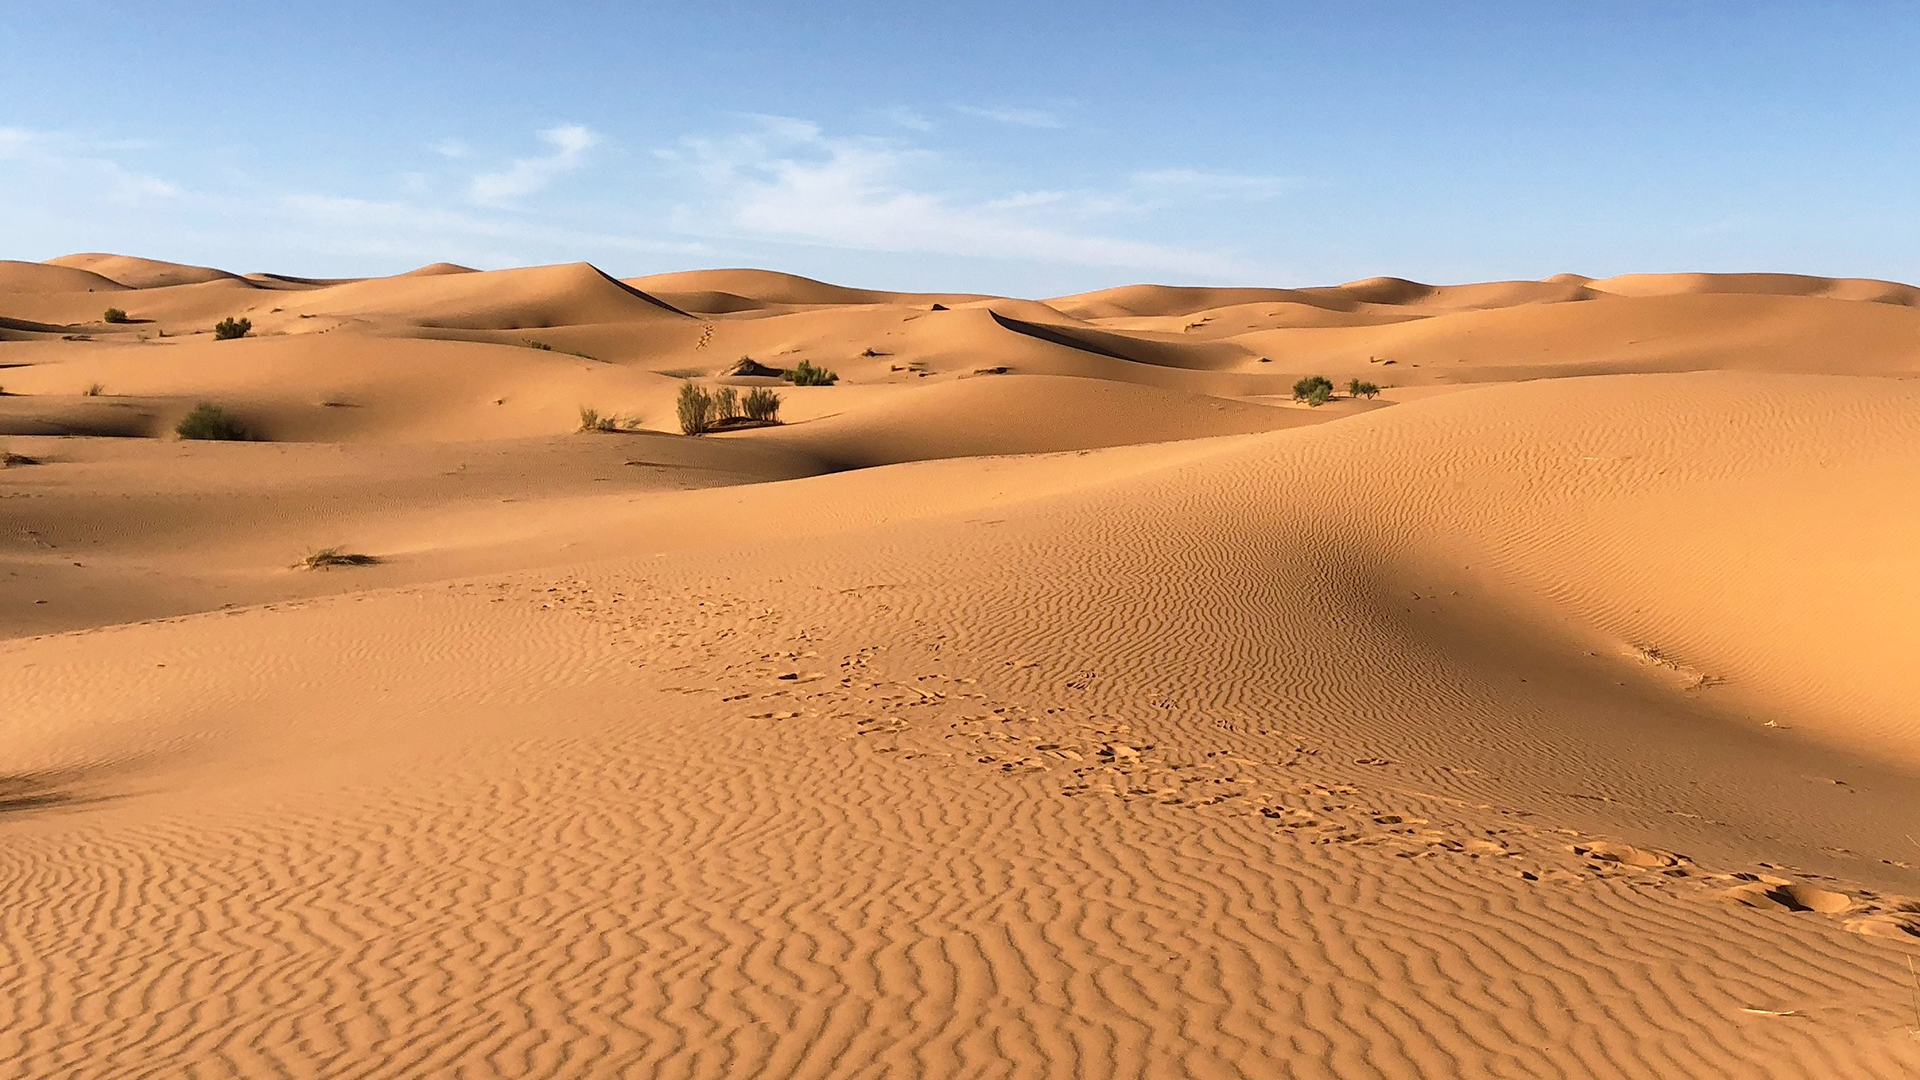 Sahara desert. Virtual background to use on Zoom, Microsoft Teams, Skype, Google Meet, WebEx or any other campatible app.